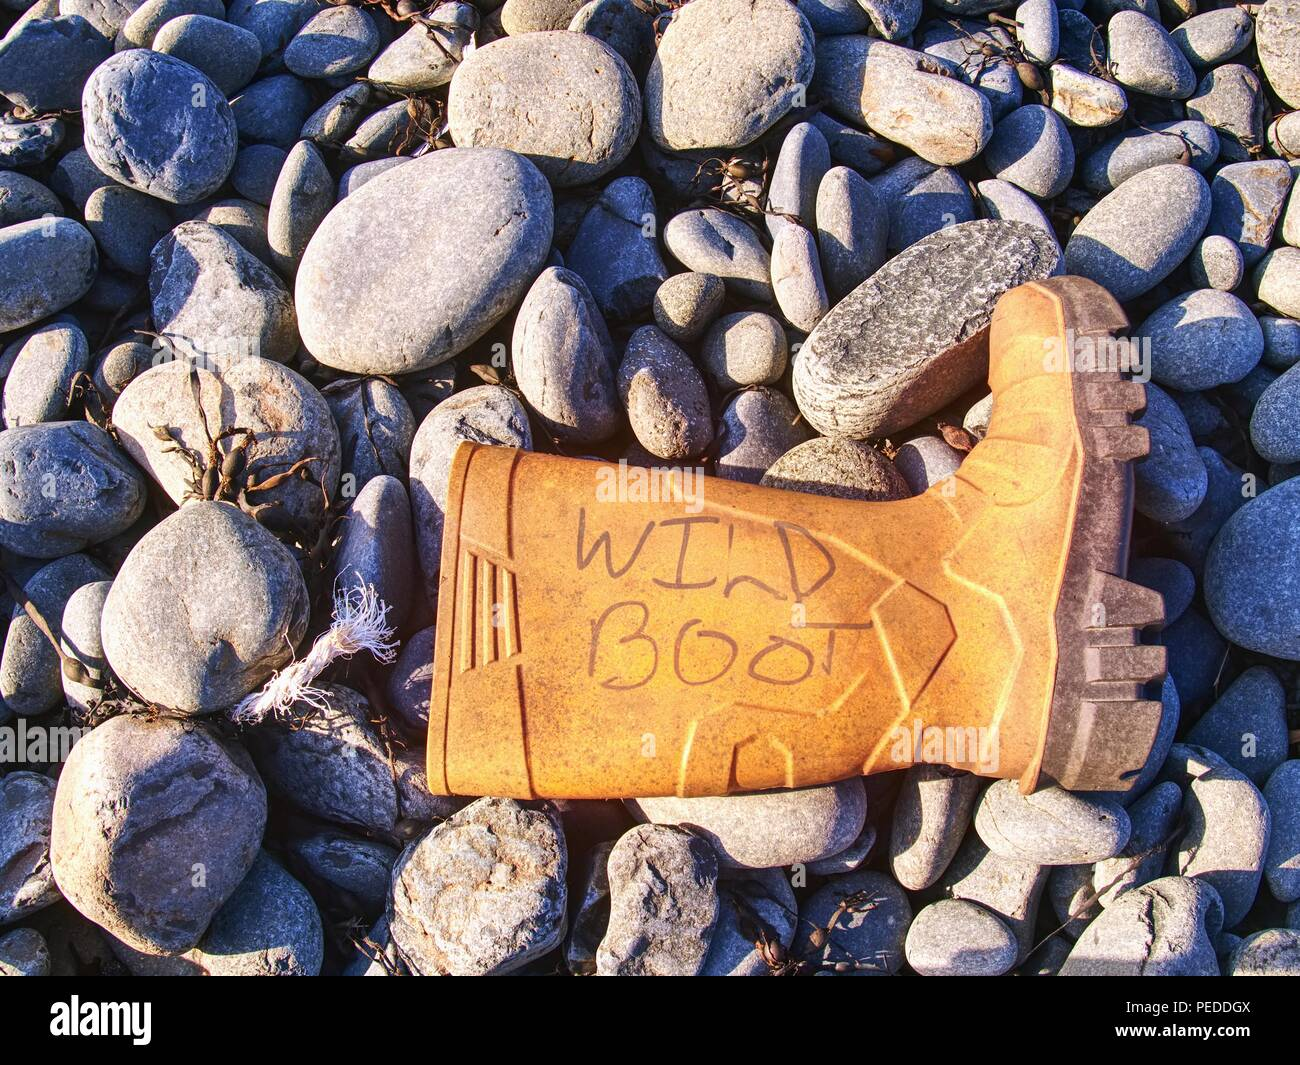 Dangerous rubbish on a stony beach.  Photo showing pollution problem. Dangerous garbage ejected from the sea on remote beaches. - Stock Image